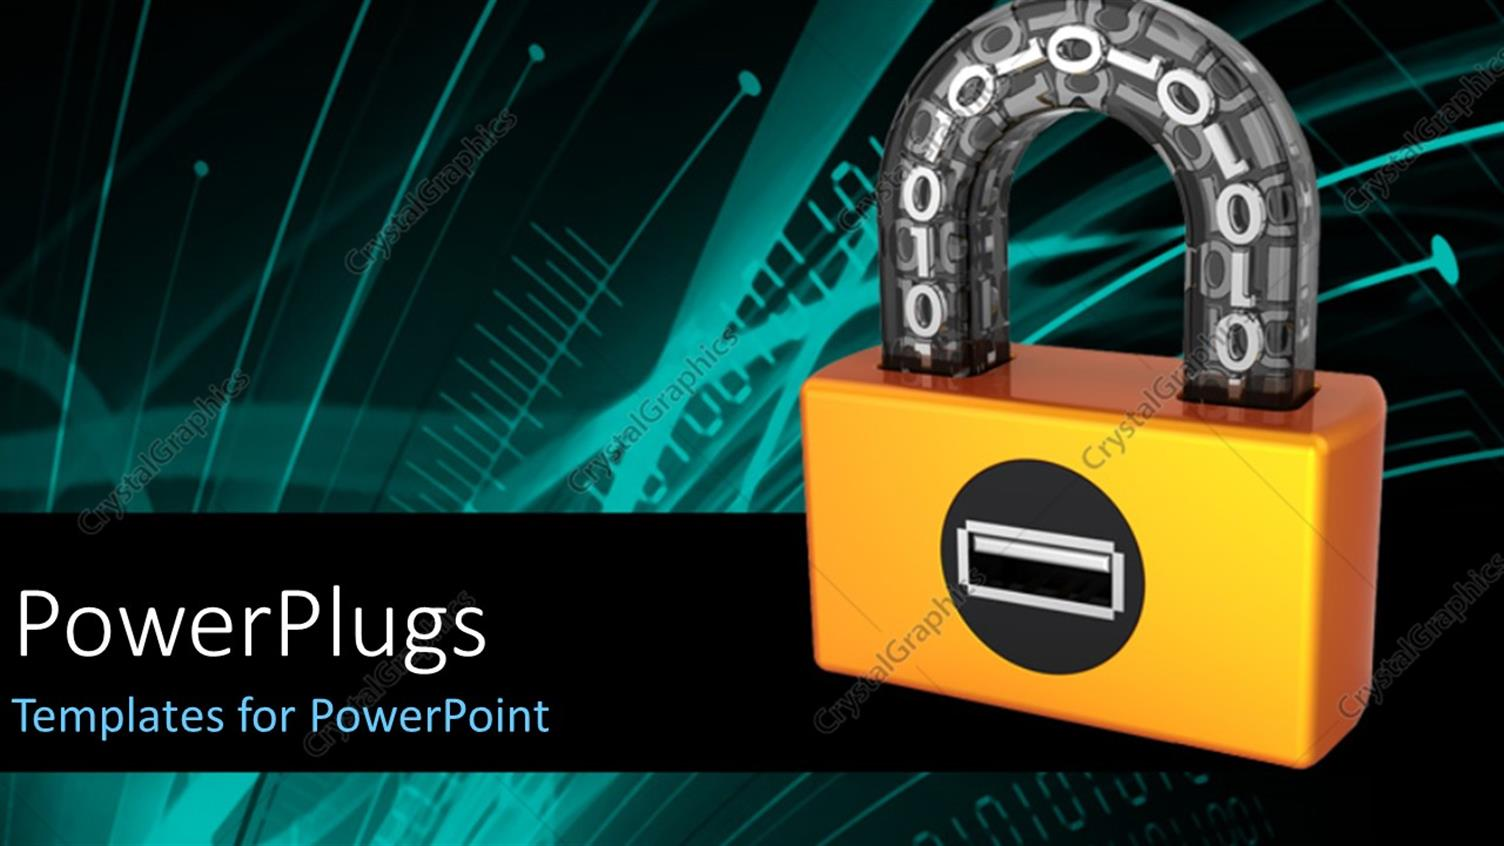 PowerPoint Template Displaying Orange Digital Padlock with Binary Code in Transparent Arch and Tech Design in the Background